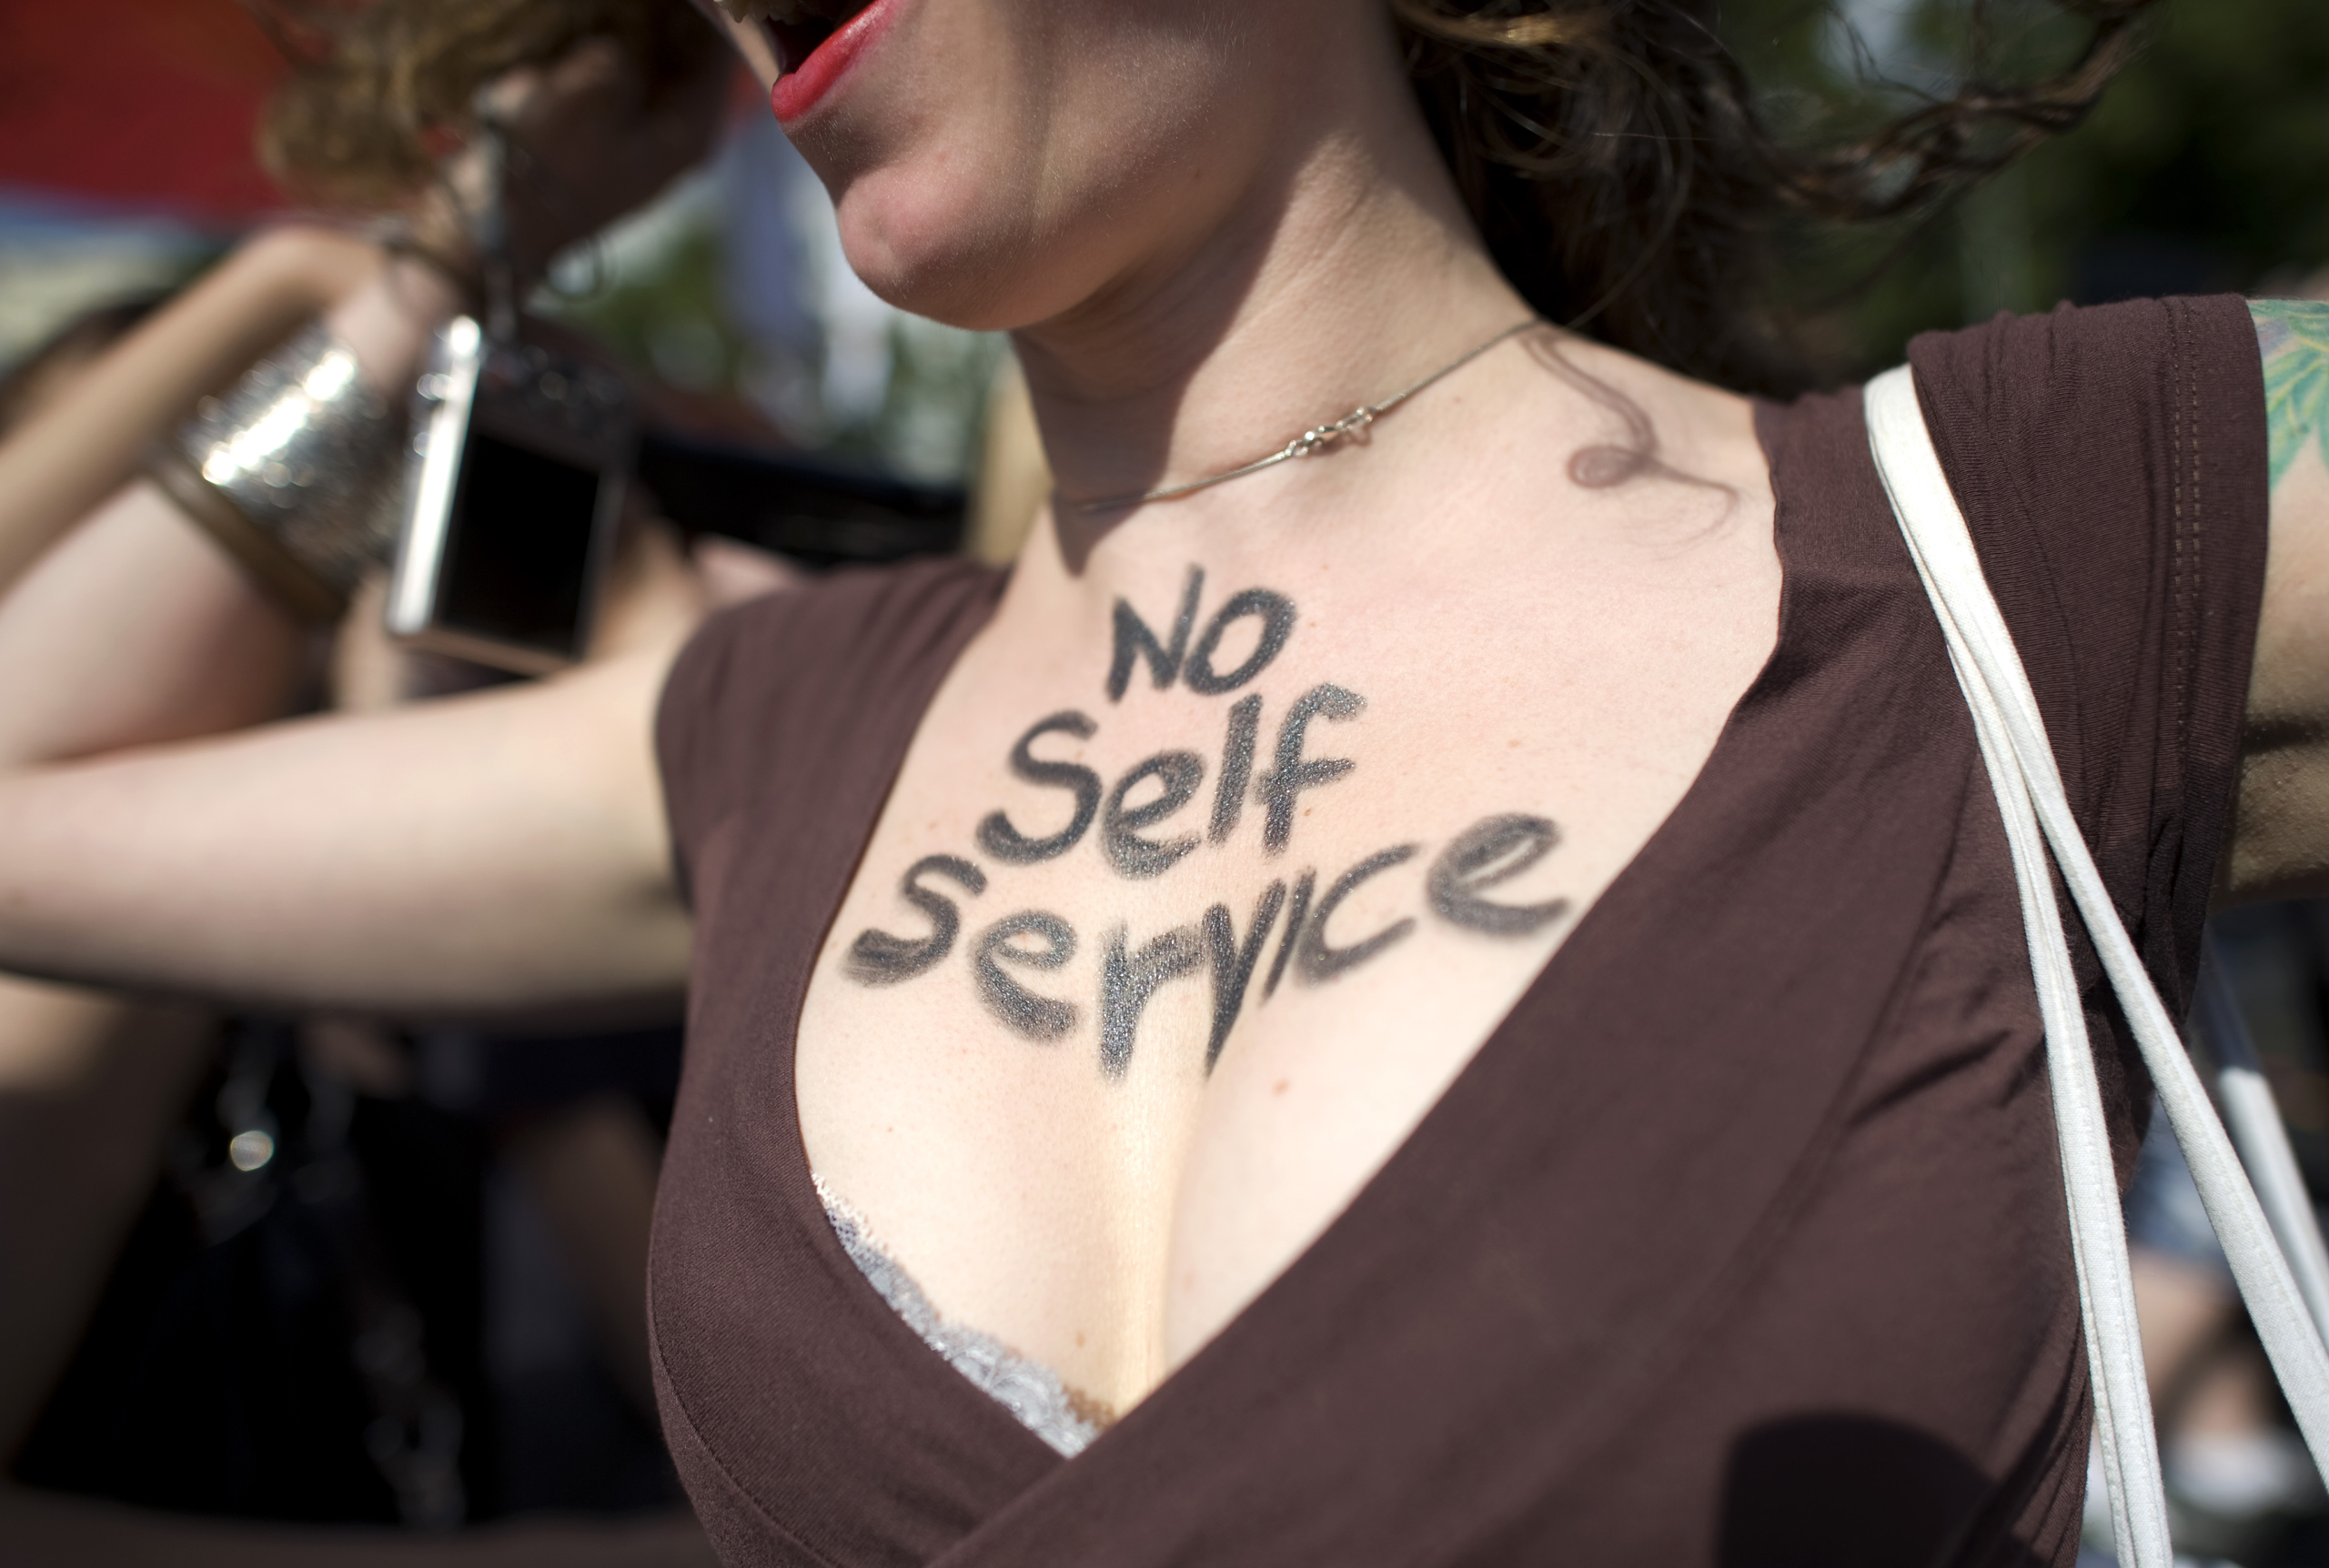 A women walks in a protest against sexual violence in Berlin, Germany on Aug. 8, 2011.